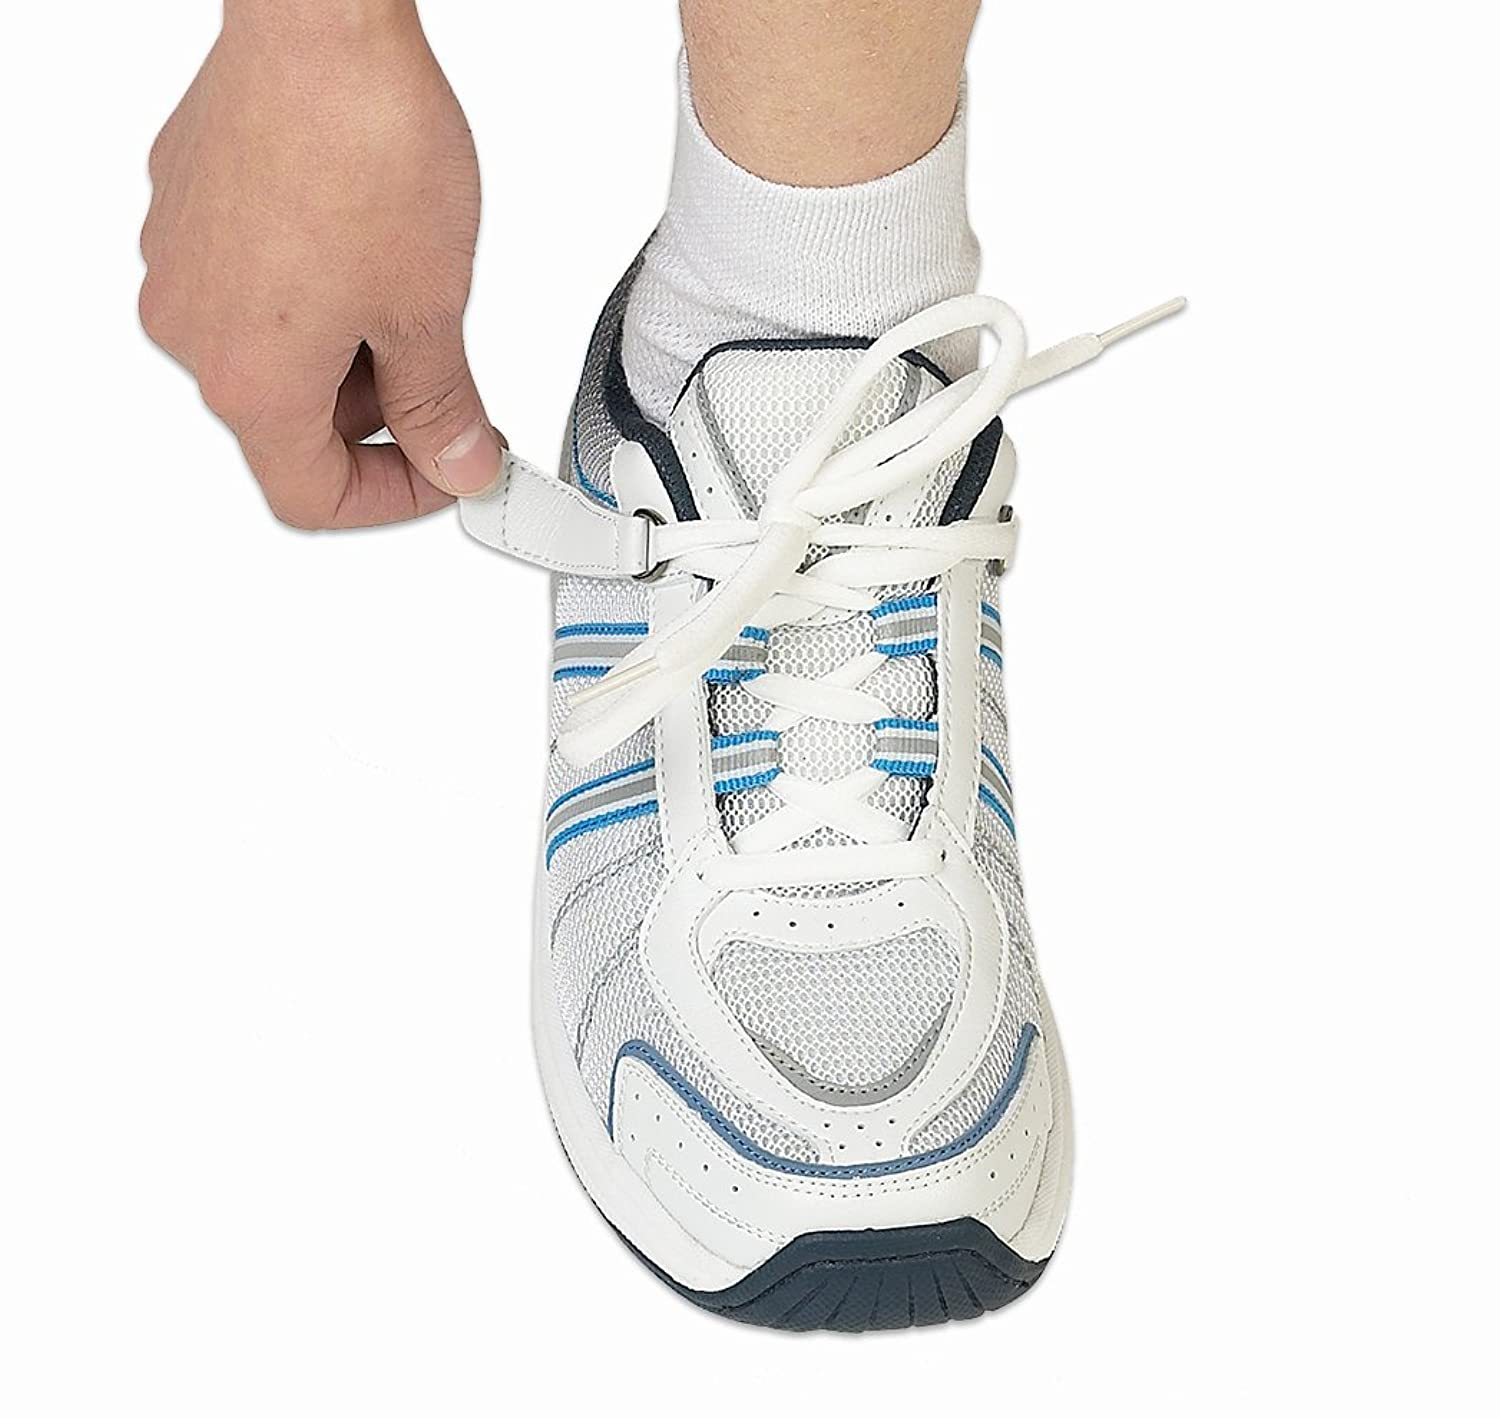 Buying shoes that reduce back pain